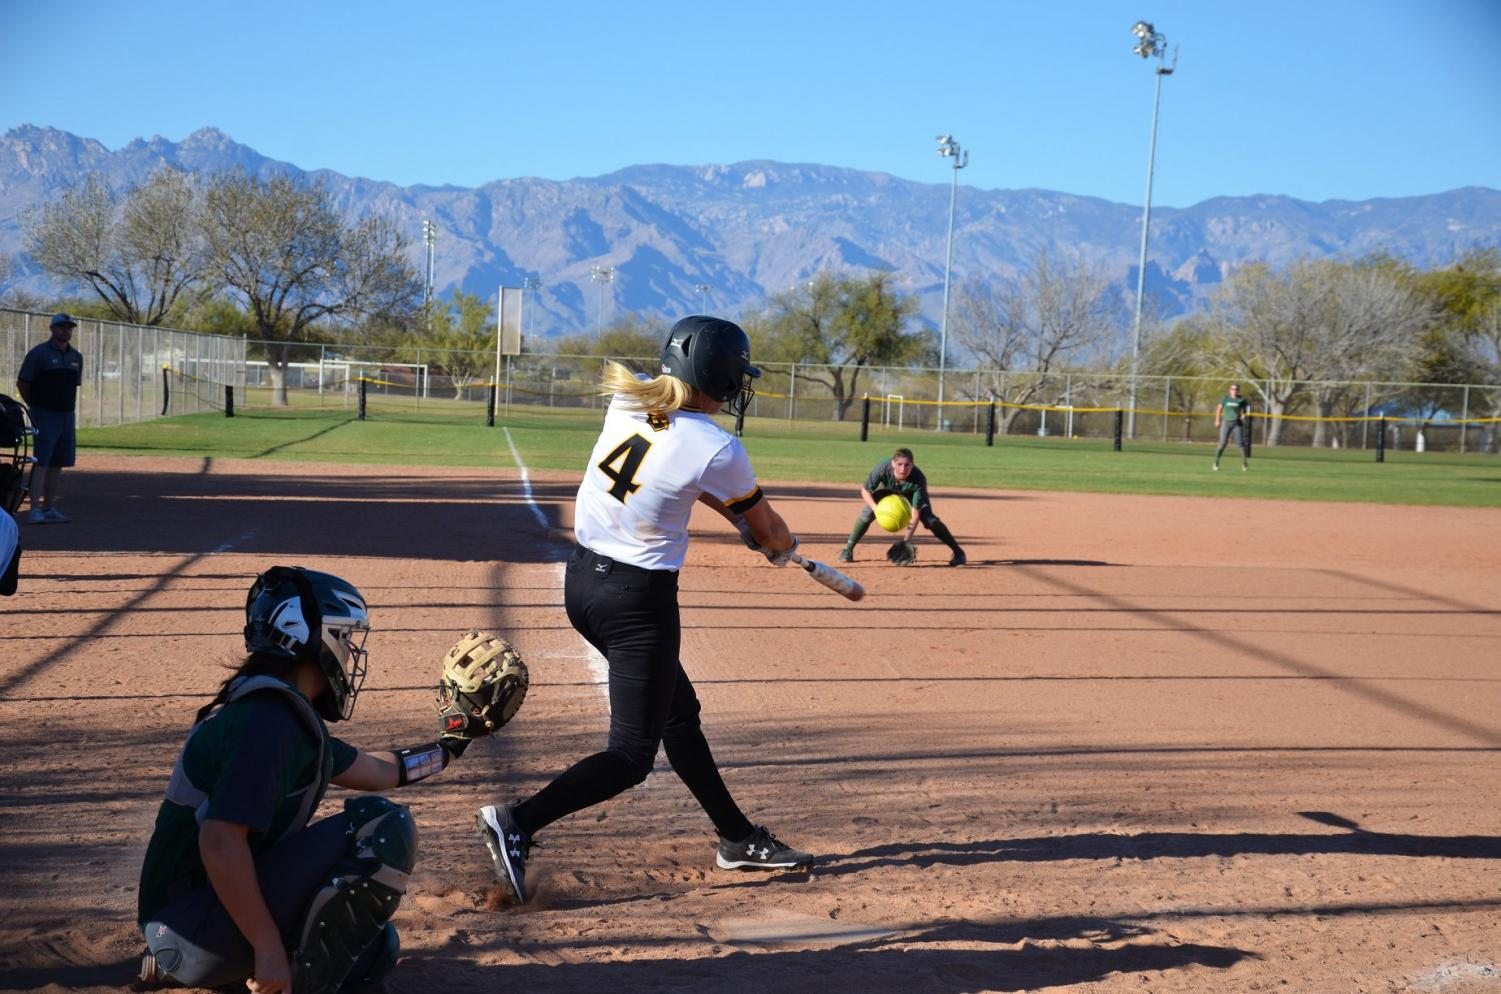 UWO senior outfielder Brianna Witter drills a ball back the other way during the National Fastpitch Coaches Association Leadoff Classic in Tempe, Arizona over the weekend. So far, the team's record stands at 7-3, with five mercy-rule victories.